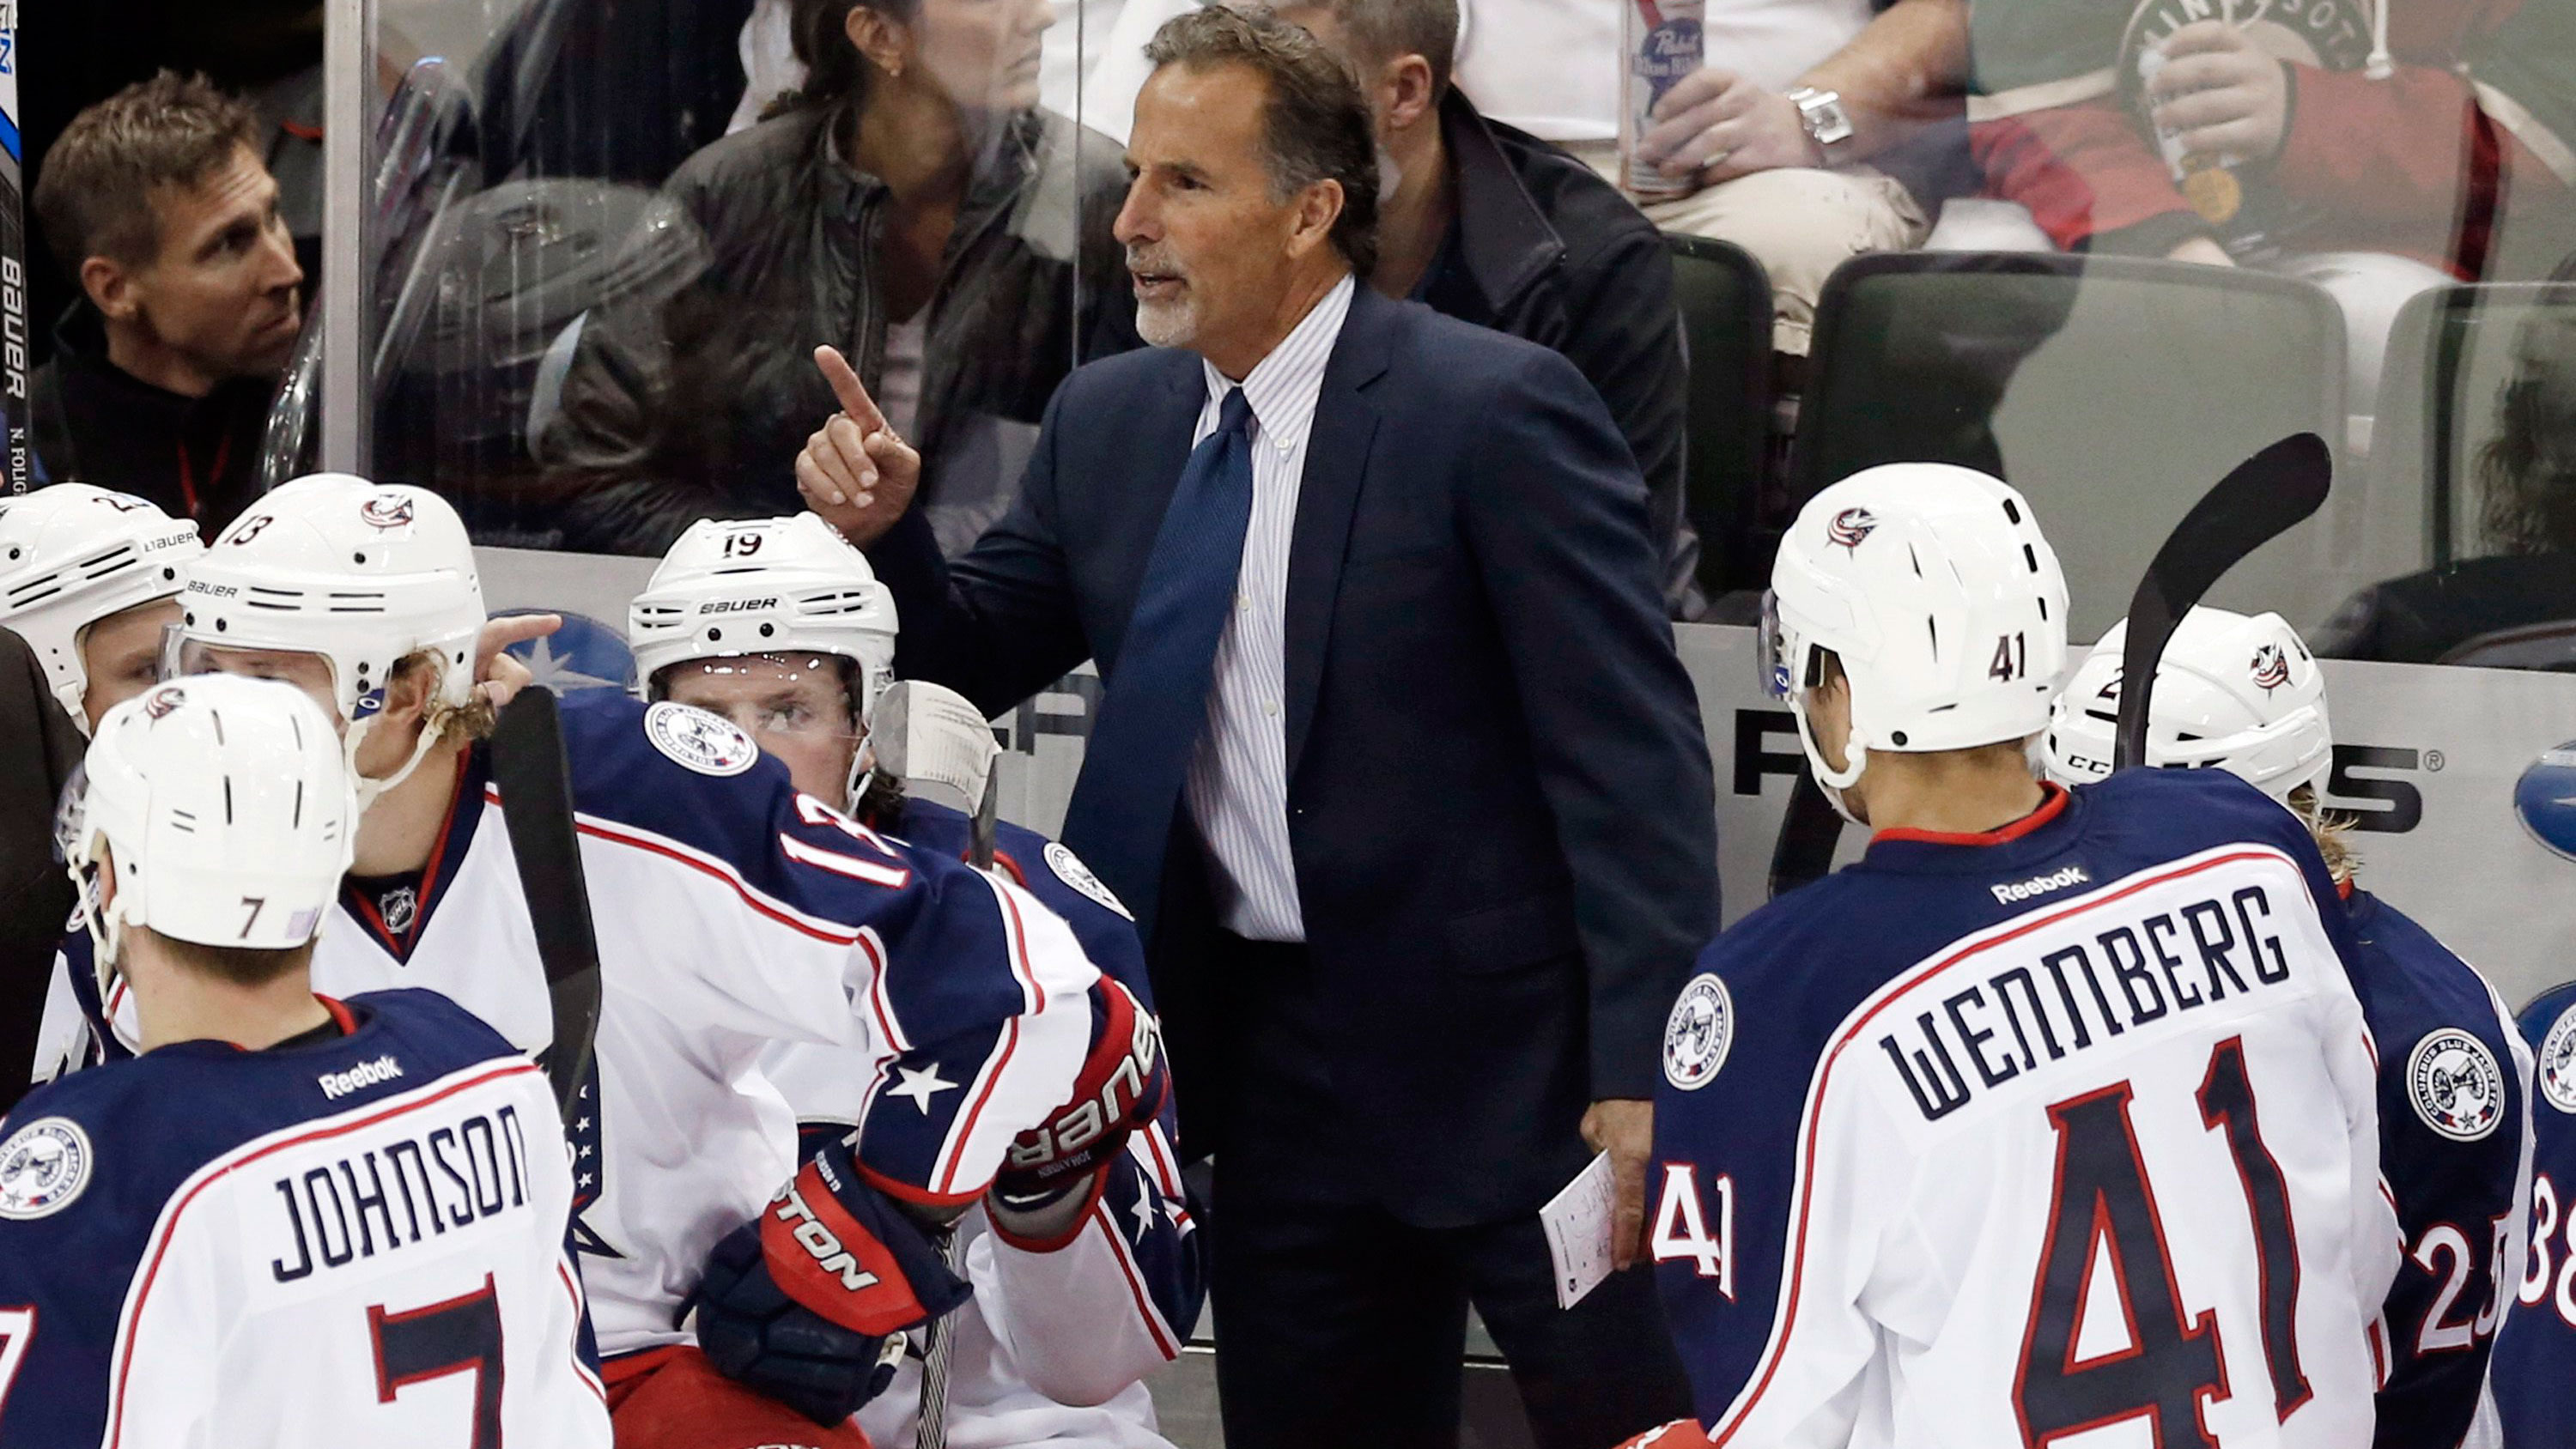 Jackets  Tortorella goes to bat for Johnson after trade request -  Sportsnet.ca 6ceaf8009